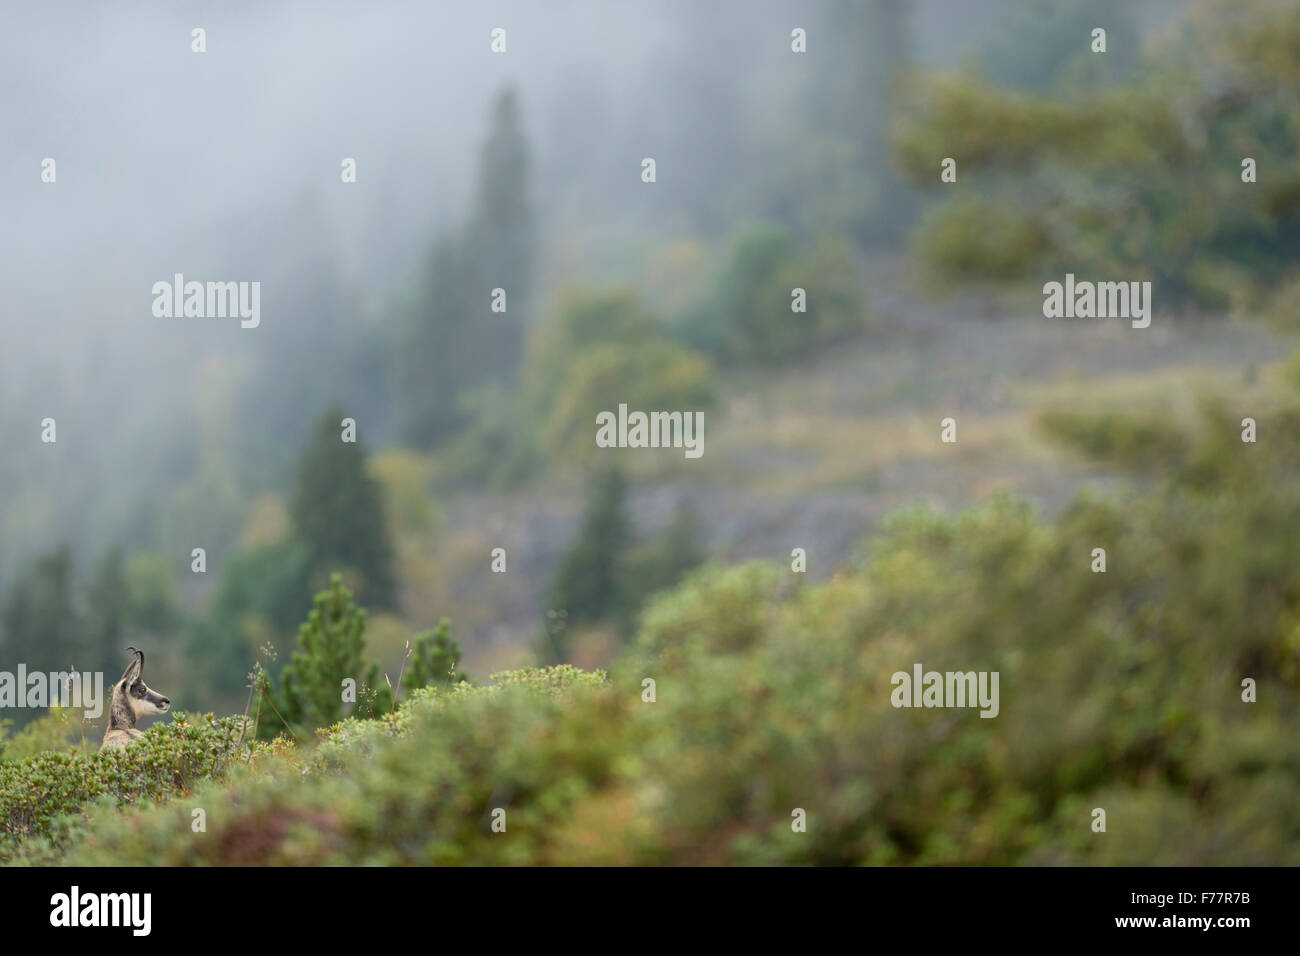 Chamois / Alpine chamois / Gaemse ( Rupicapra rupicapra ) stands in midst of colorful rich alpine vegetation. - Stock Image